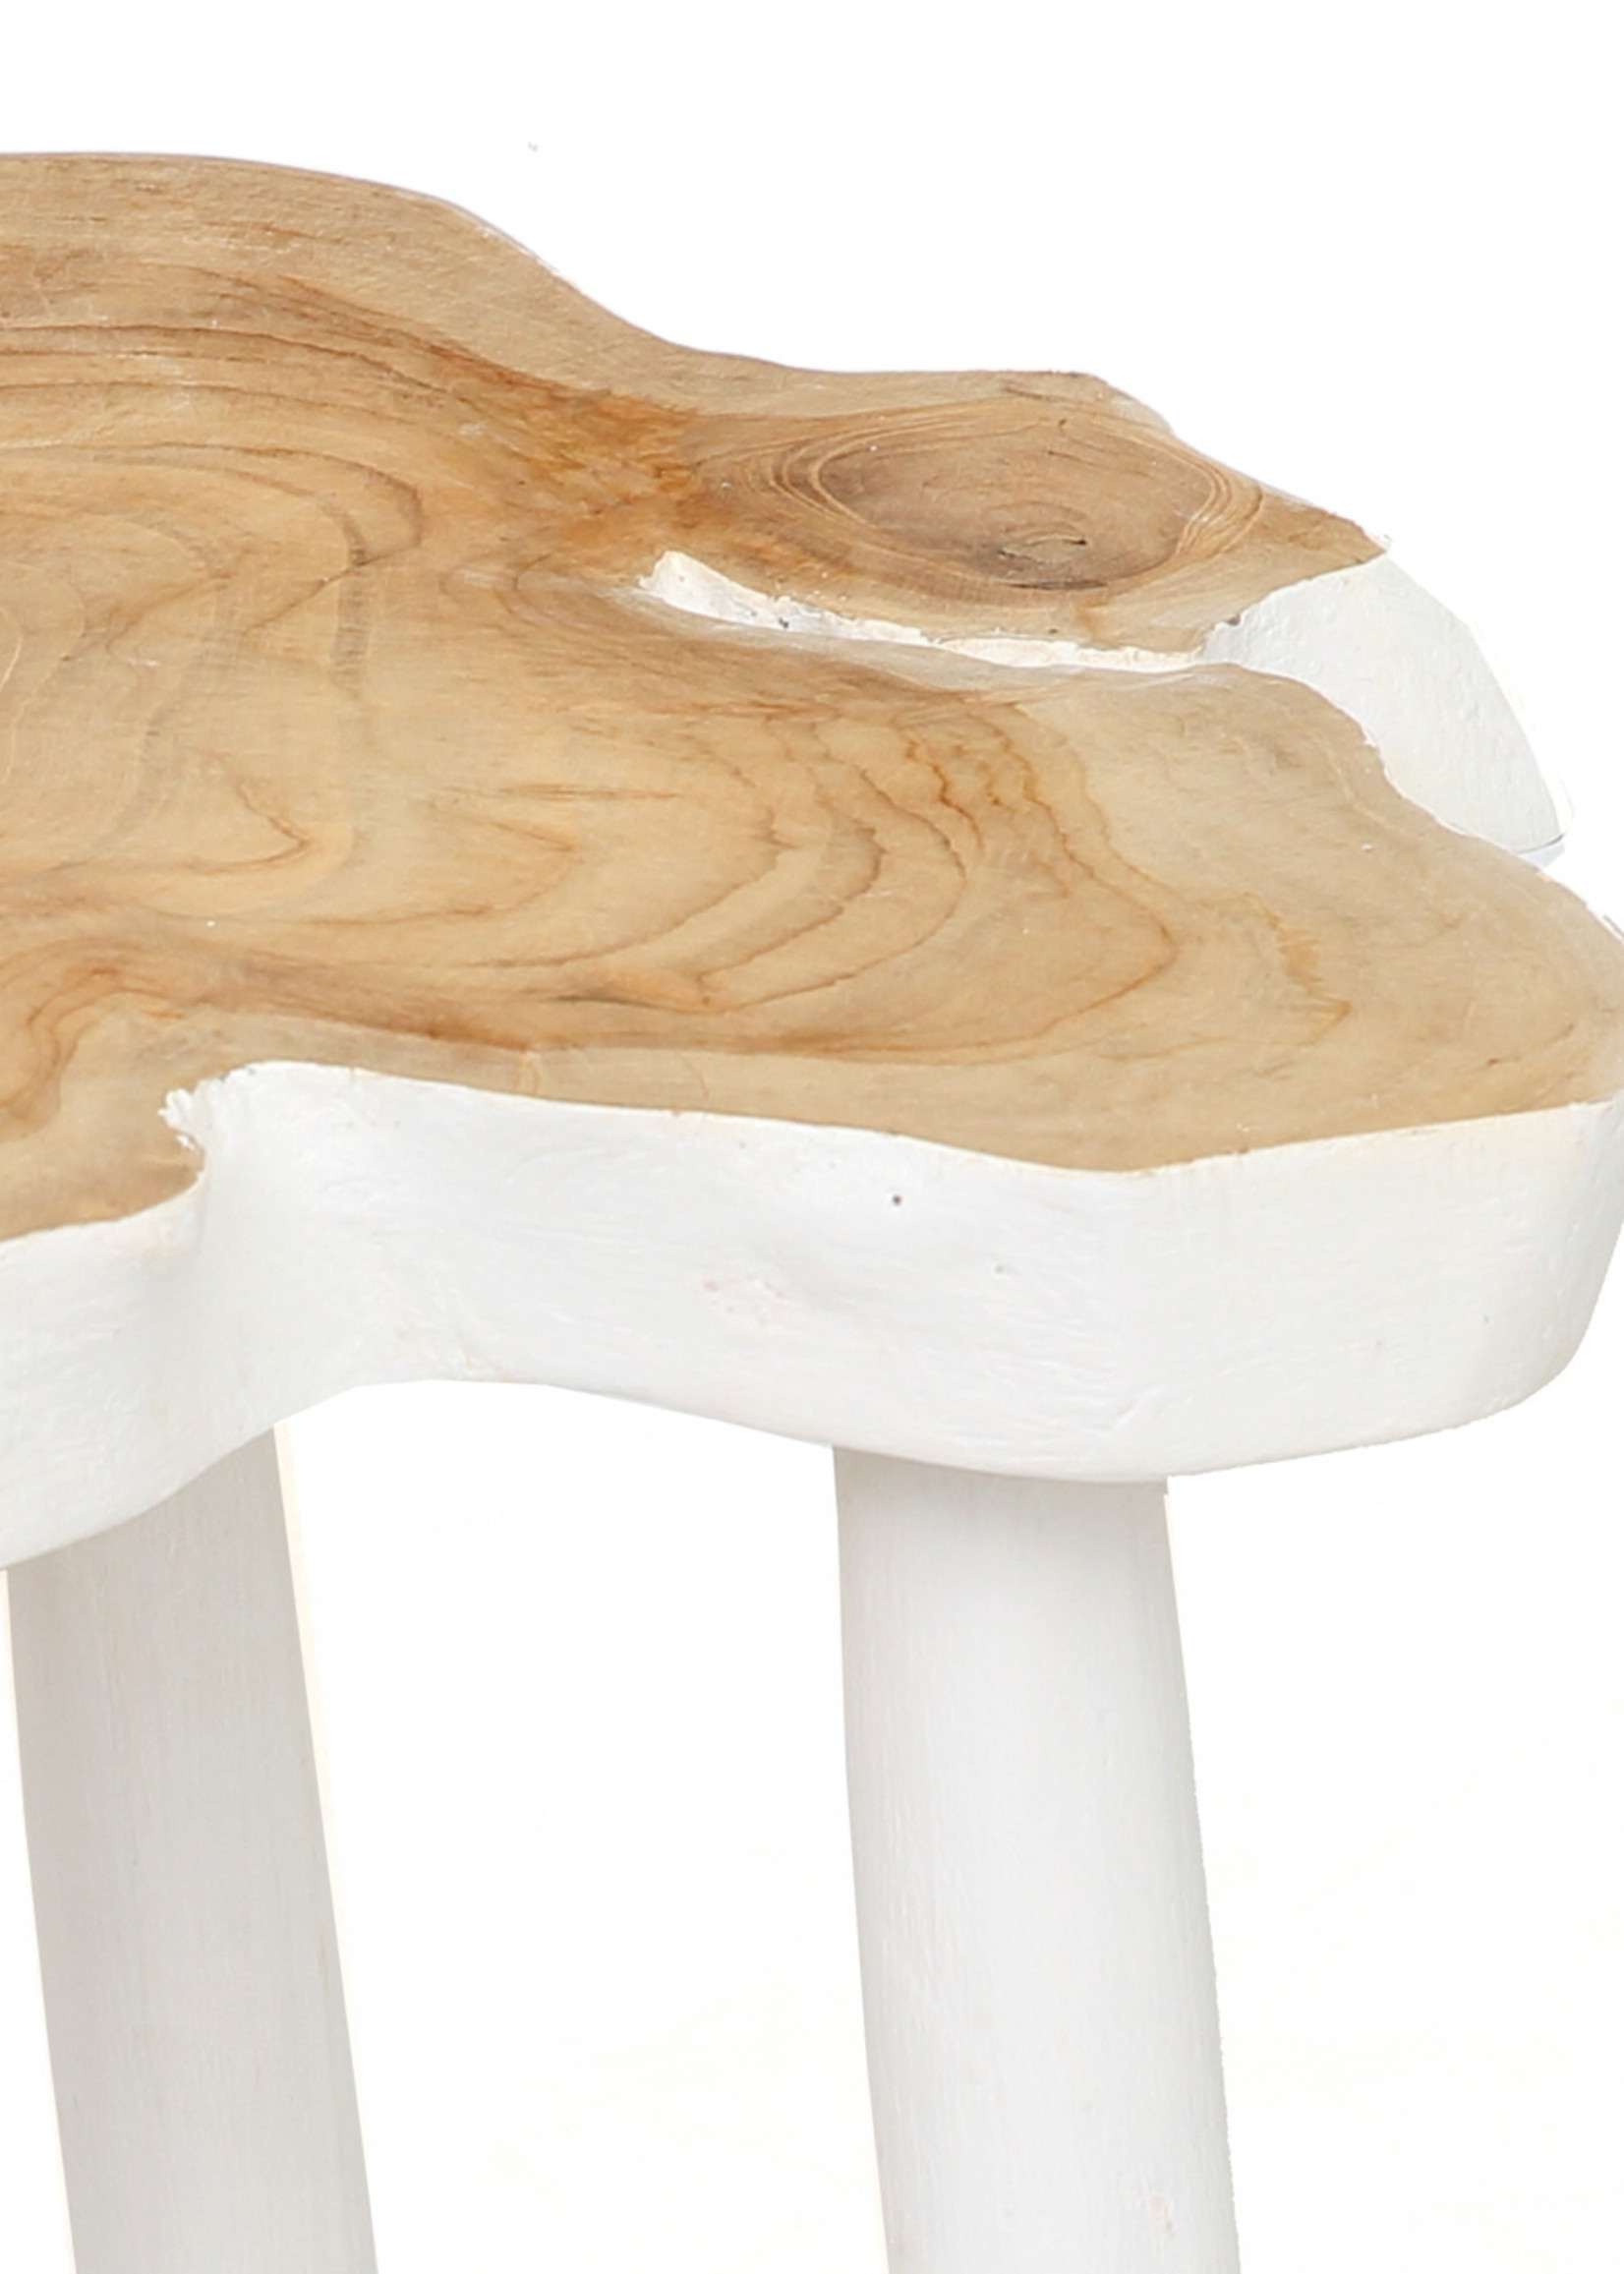 The Organic Side Table - Natural White